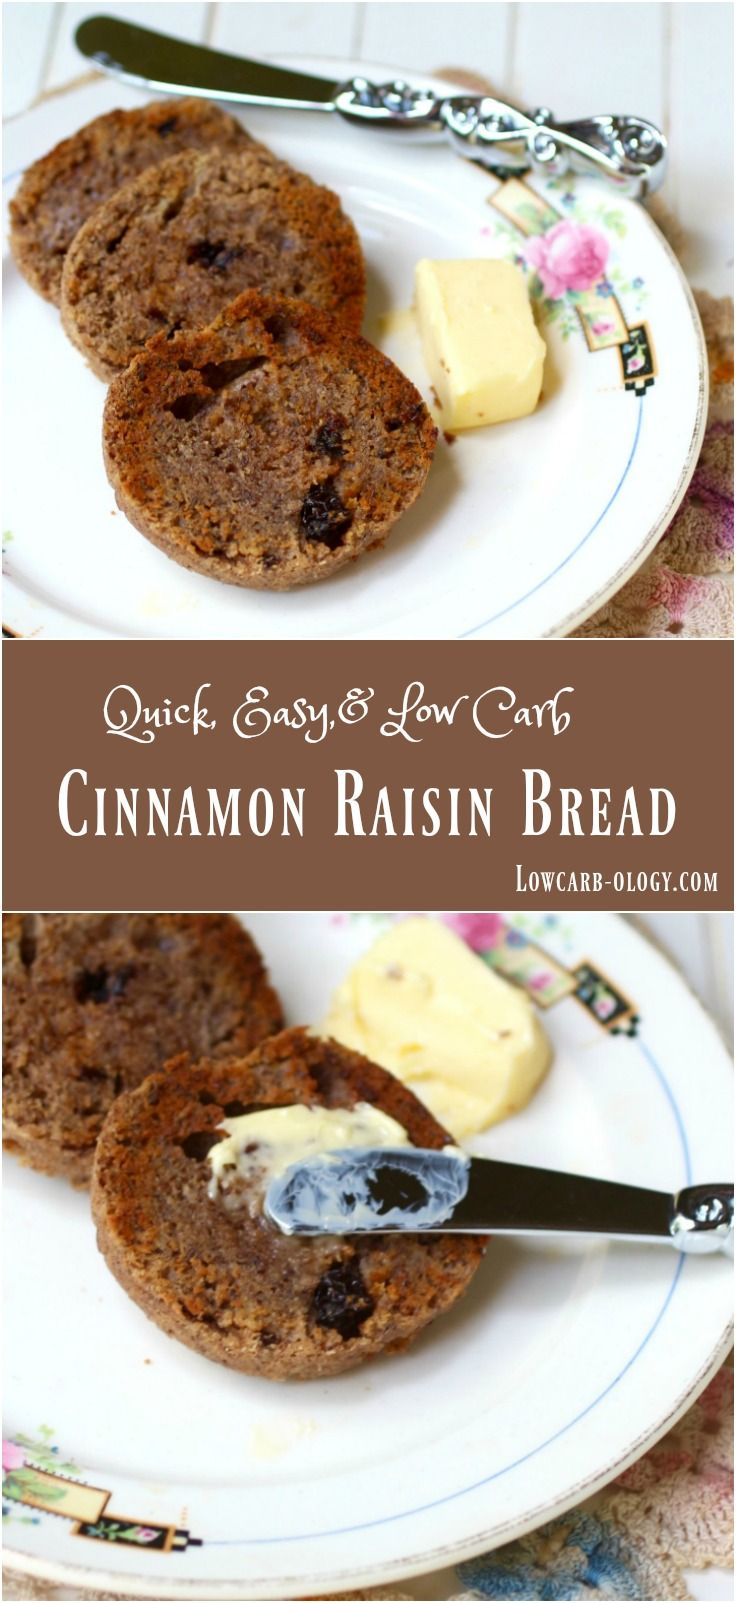 This low carb cinnamon bread with raisins has just 4.3 net carbs and it's so…